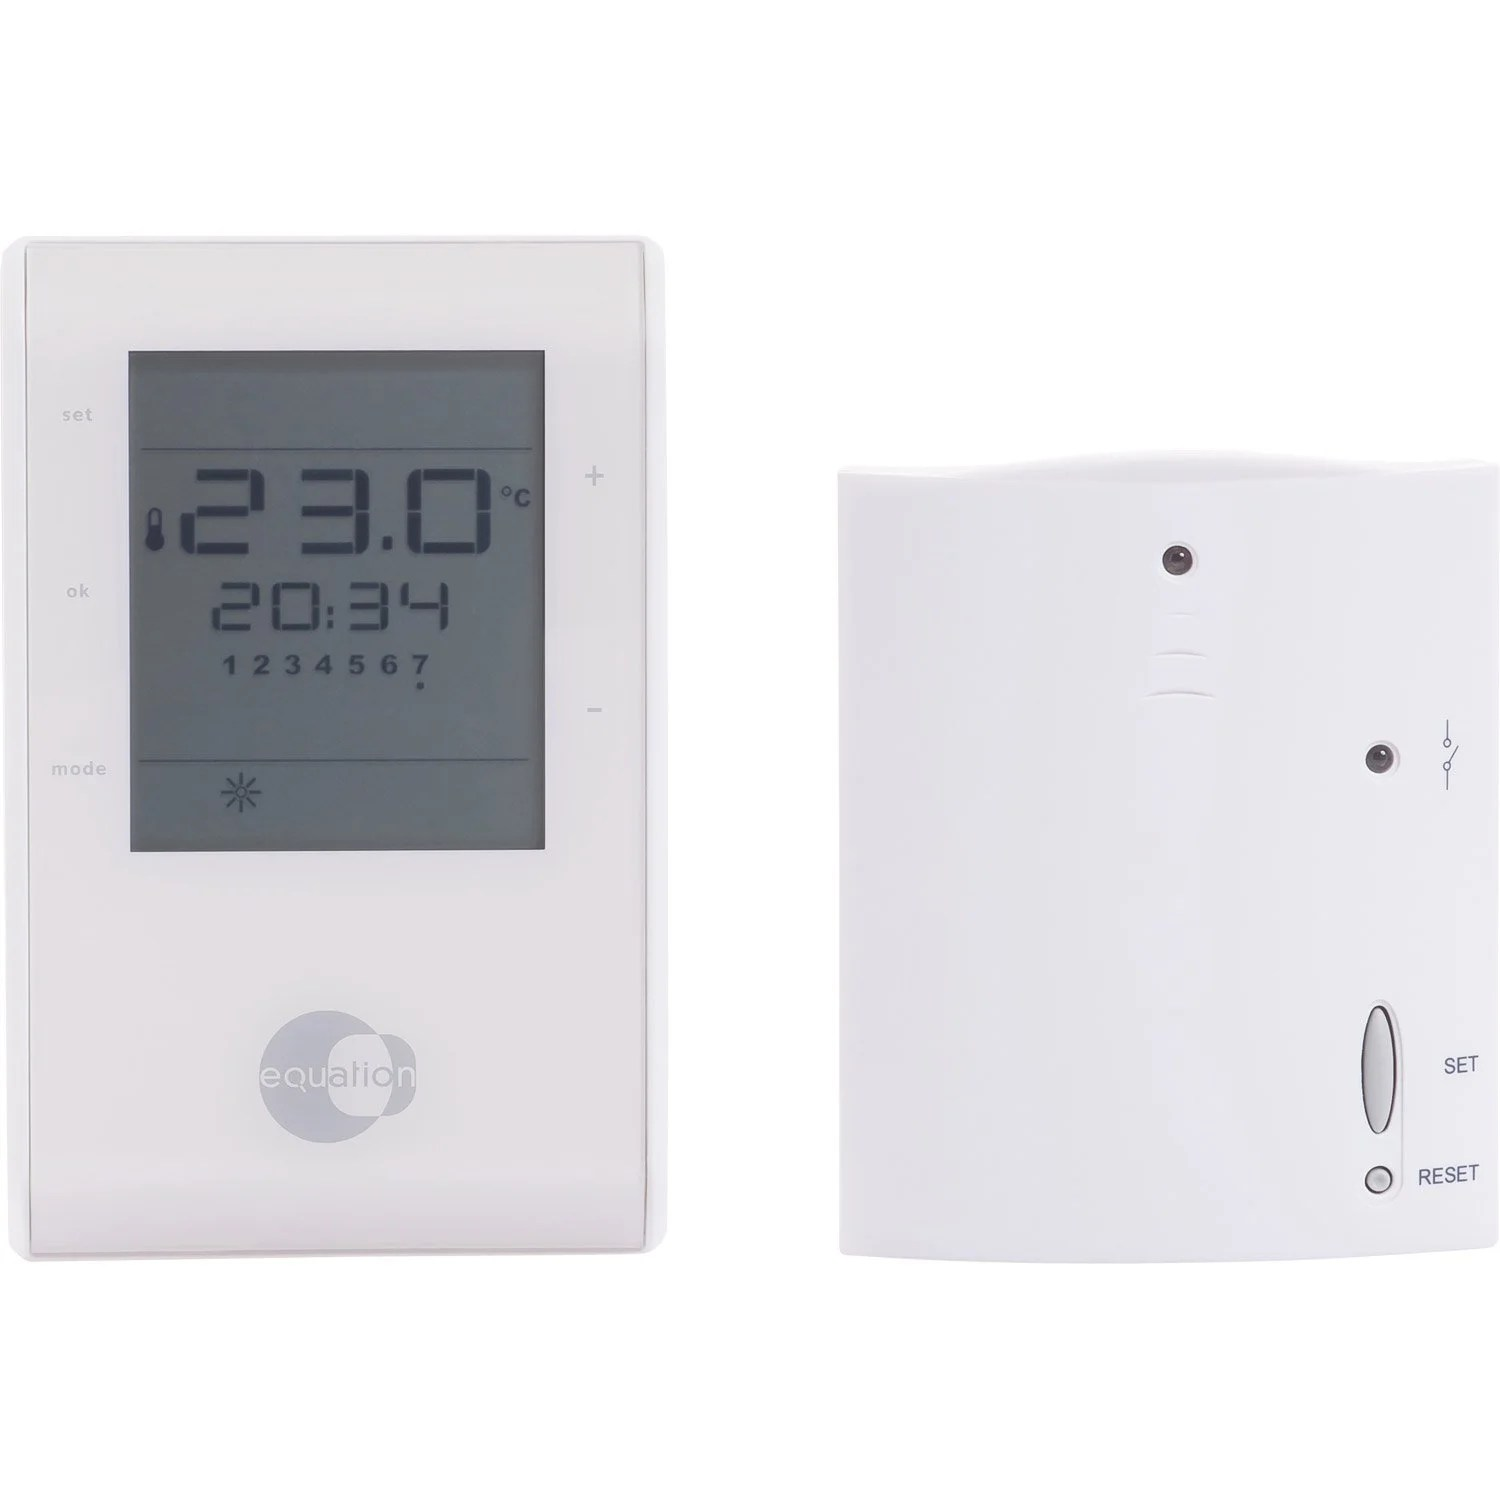 Thermostat Chaudiere Gaz Leroy Merlin Thermostat D 39ambiance Sans Fil Equation Confort Crono